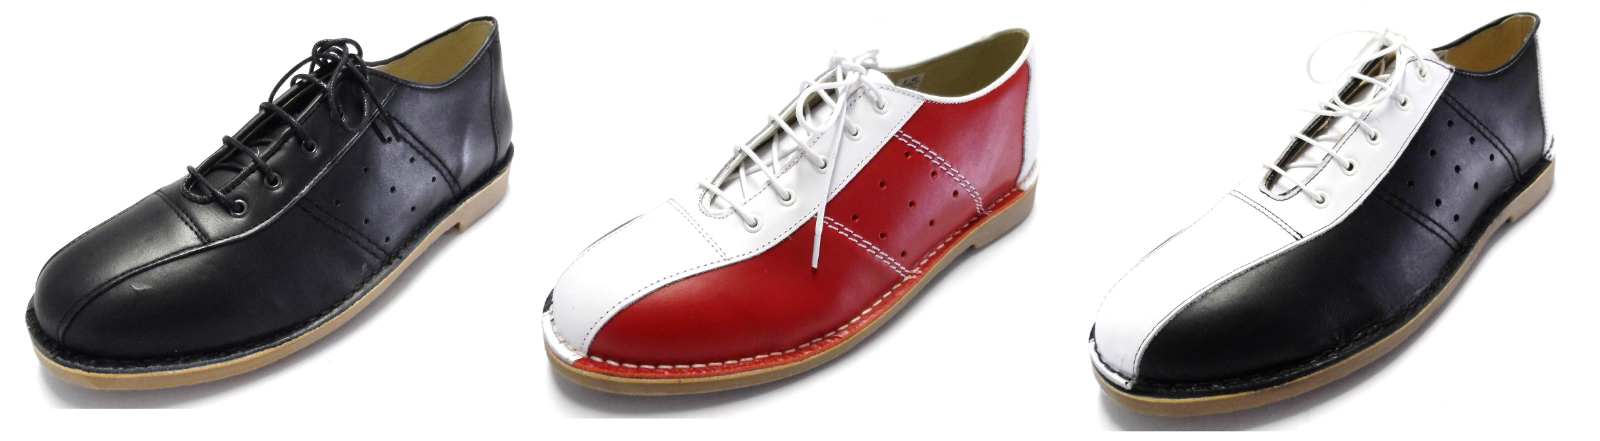 Ikon Pelle MARRIOT MOD 60s Stile Bowling Sautope In 3 Coloreei Taglie 6S a 12S